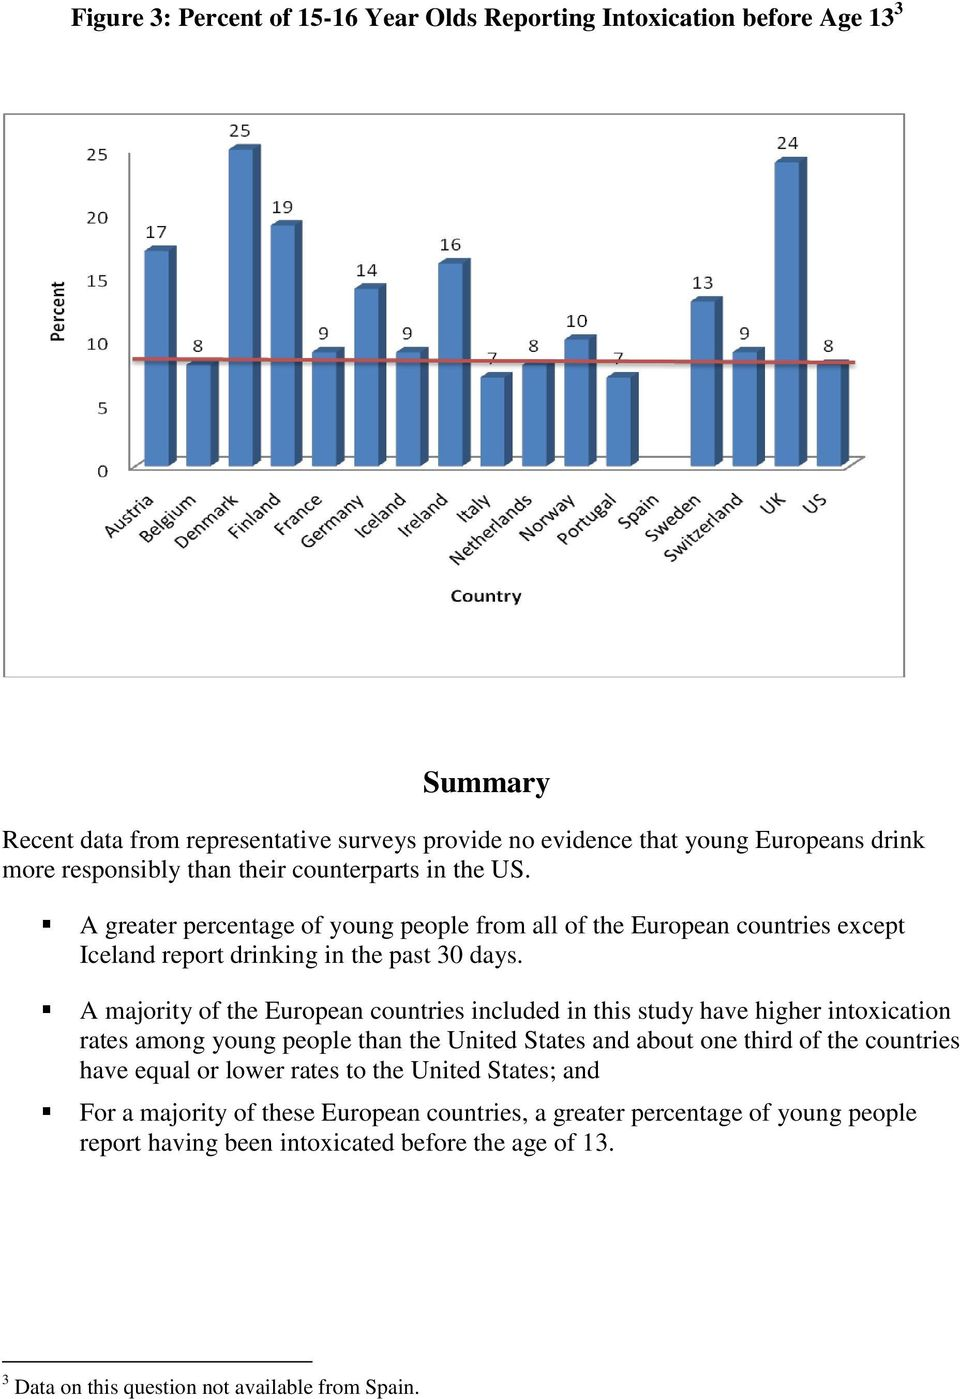 A majority of the European countries included in this study have higher intoxication rates among young people than the United States and about one third of the countries have equal or